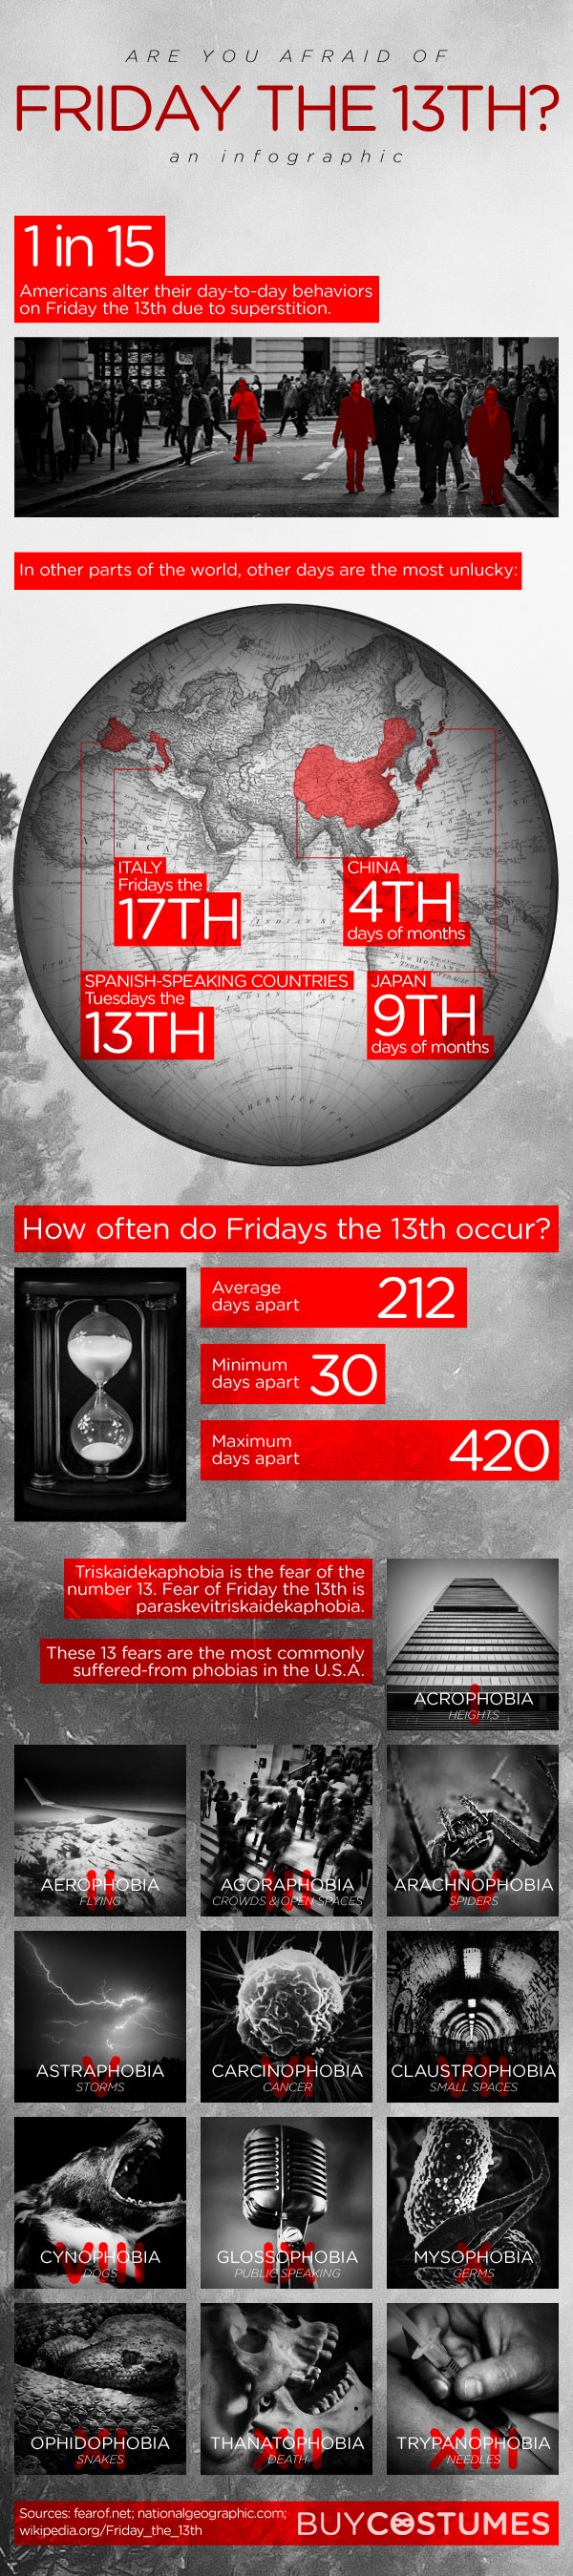 friday-the-13th-infographic-v1